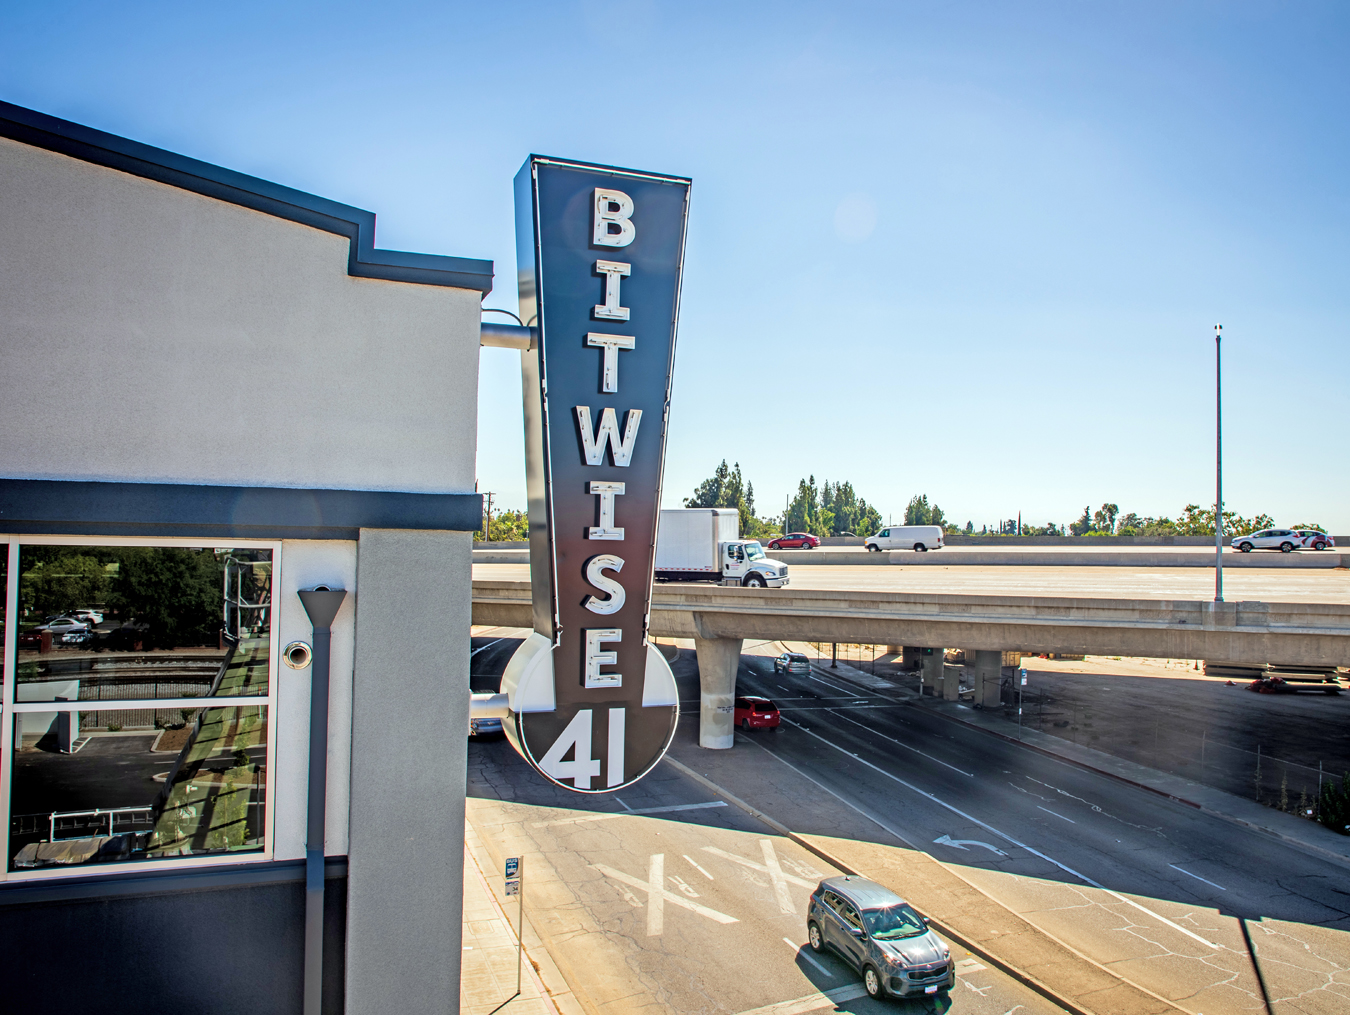 A-Plus Signs (Fresno, CA) fabricated two outdoor neon signs for Bitwise 41.